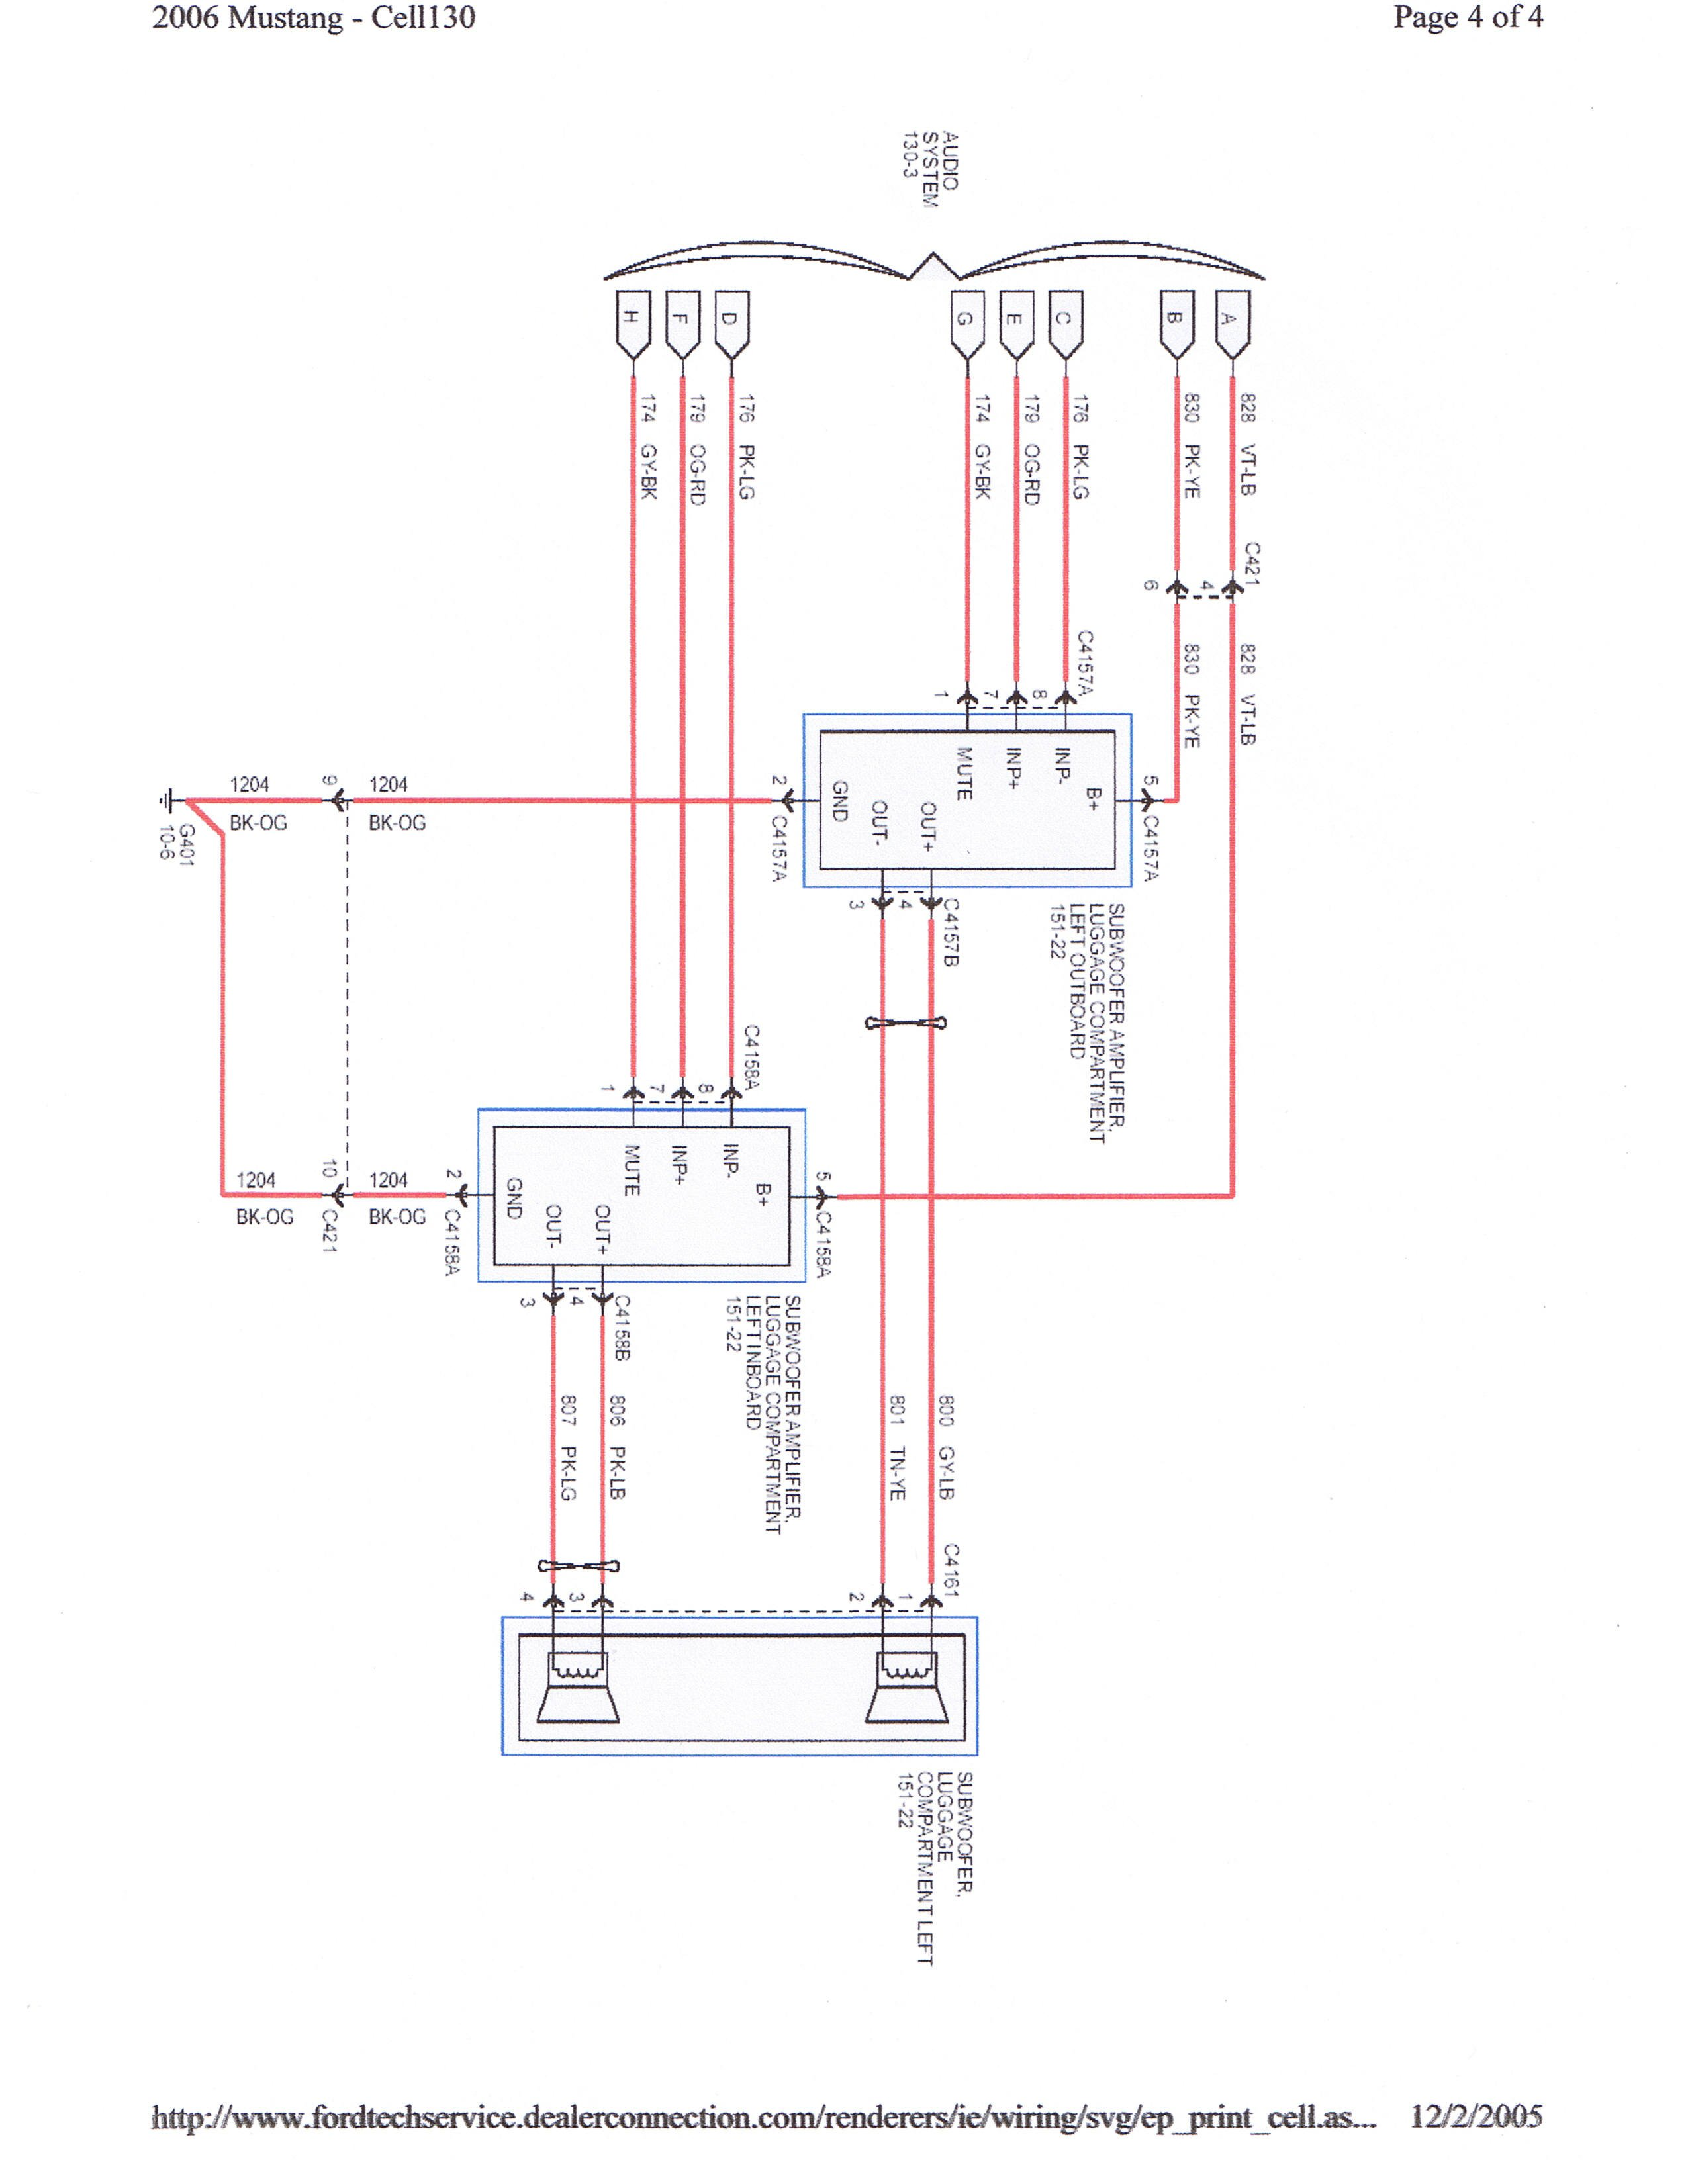 single subwoofer wiring diagram database architecture ford mustang forum view post shaker 500 1000